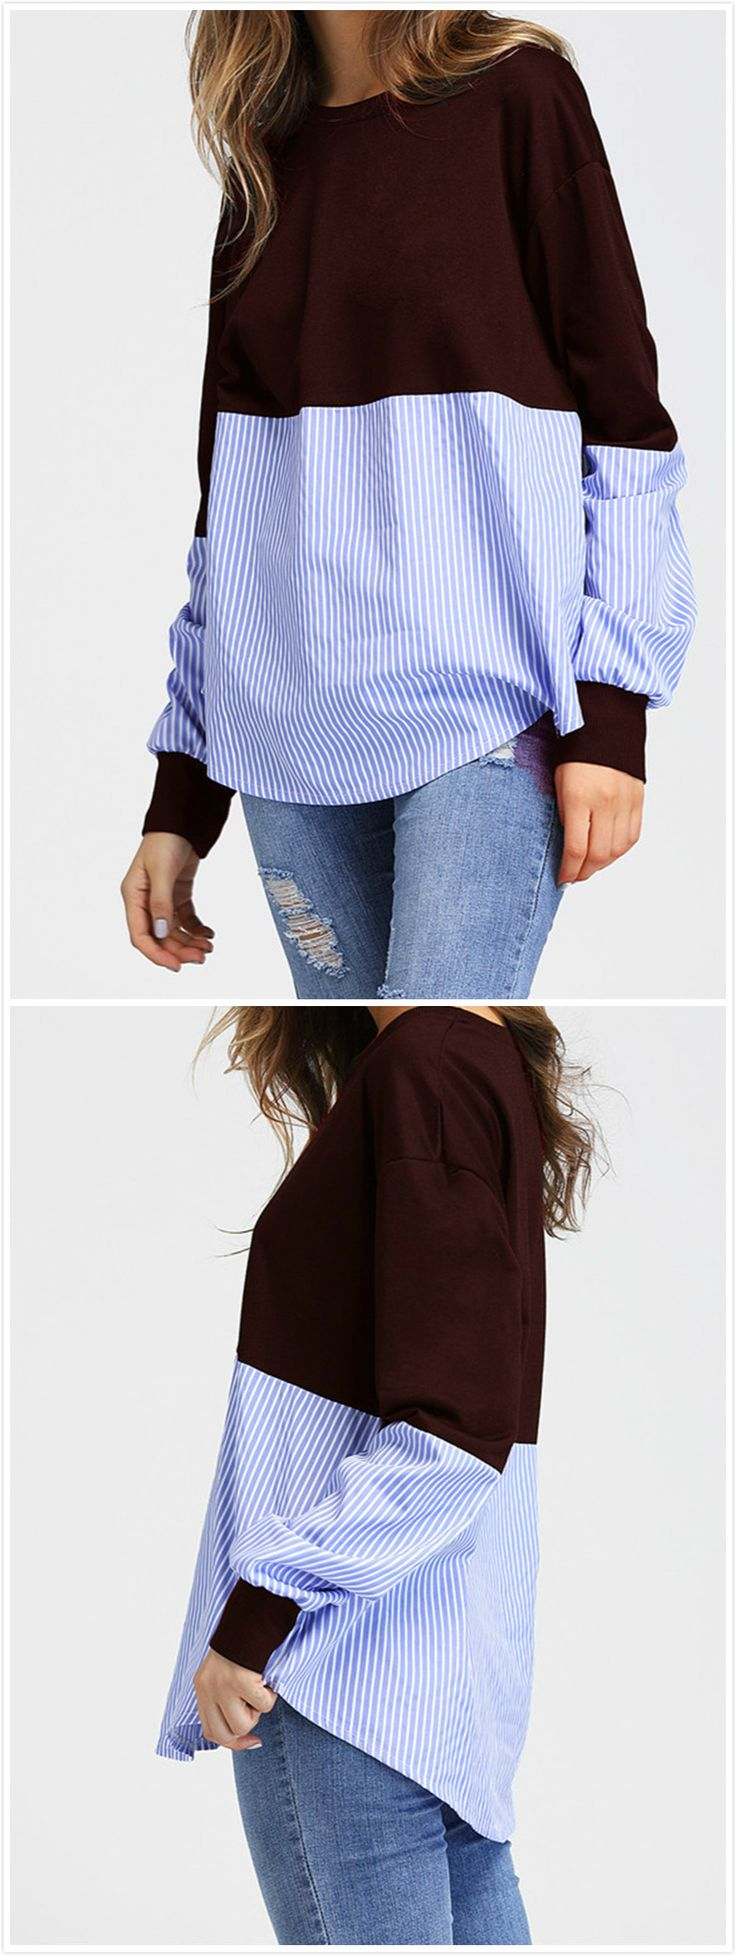 Casual Round Neck Long Sleeve Splicing Sweatshirt